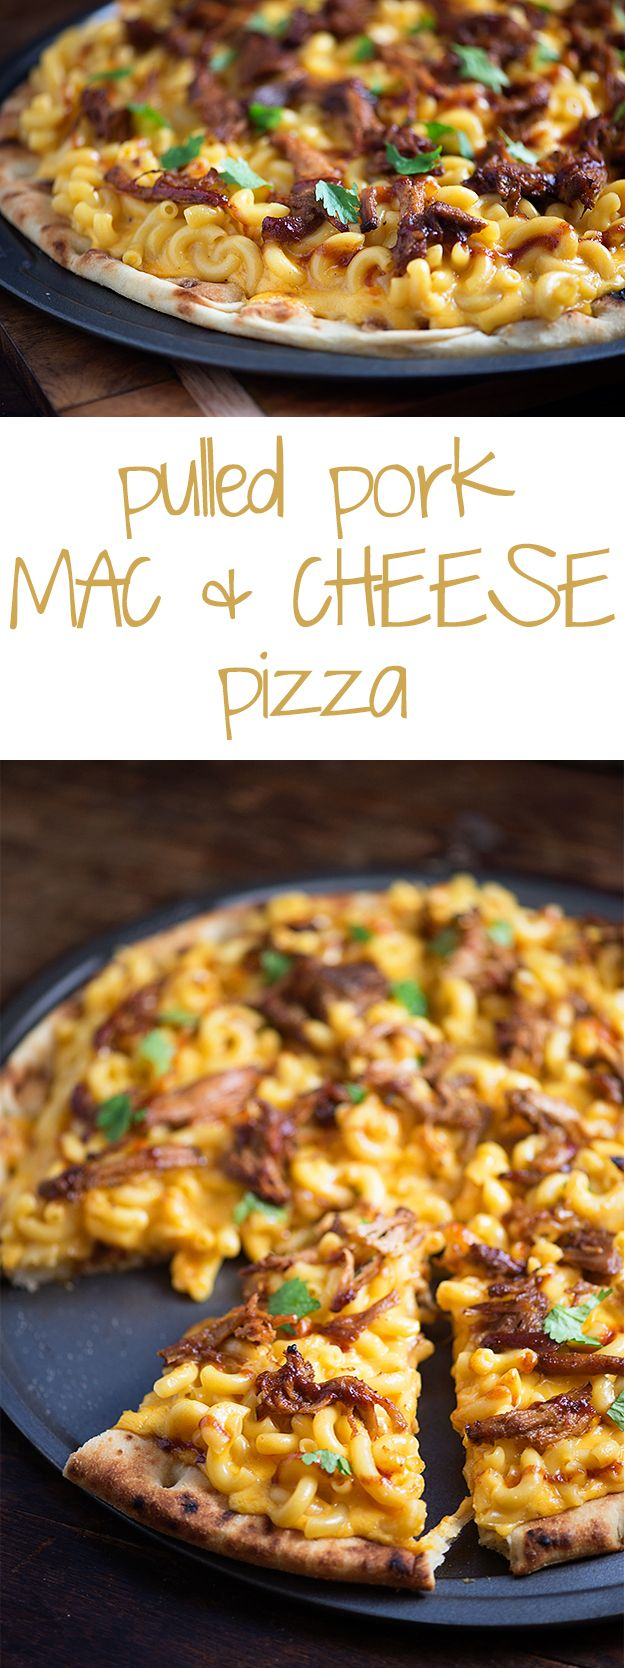 Pulled Pork Mac and Cheese Pizza - If you have leftover pulled pork, this recipe is for you! A simple creamy stove top macaroni and cheese pizza is the perfect use for that crock pot pulled pork!